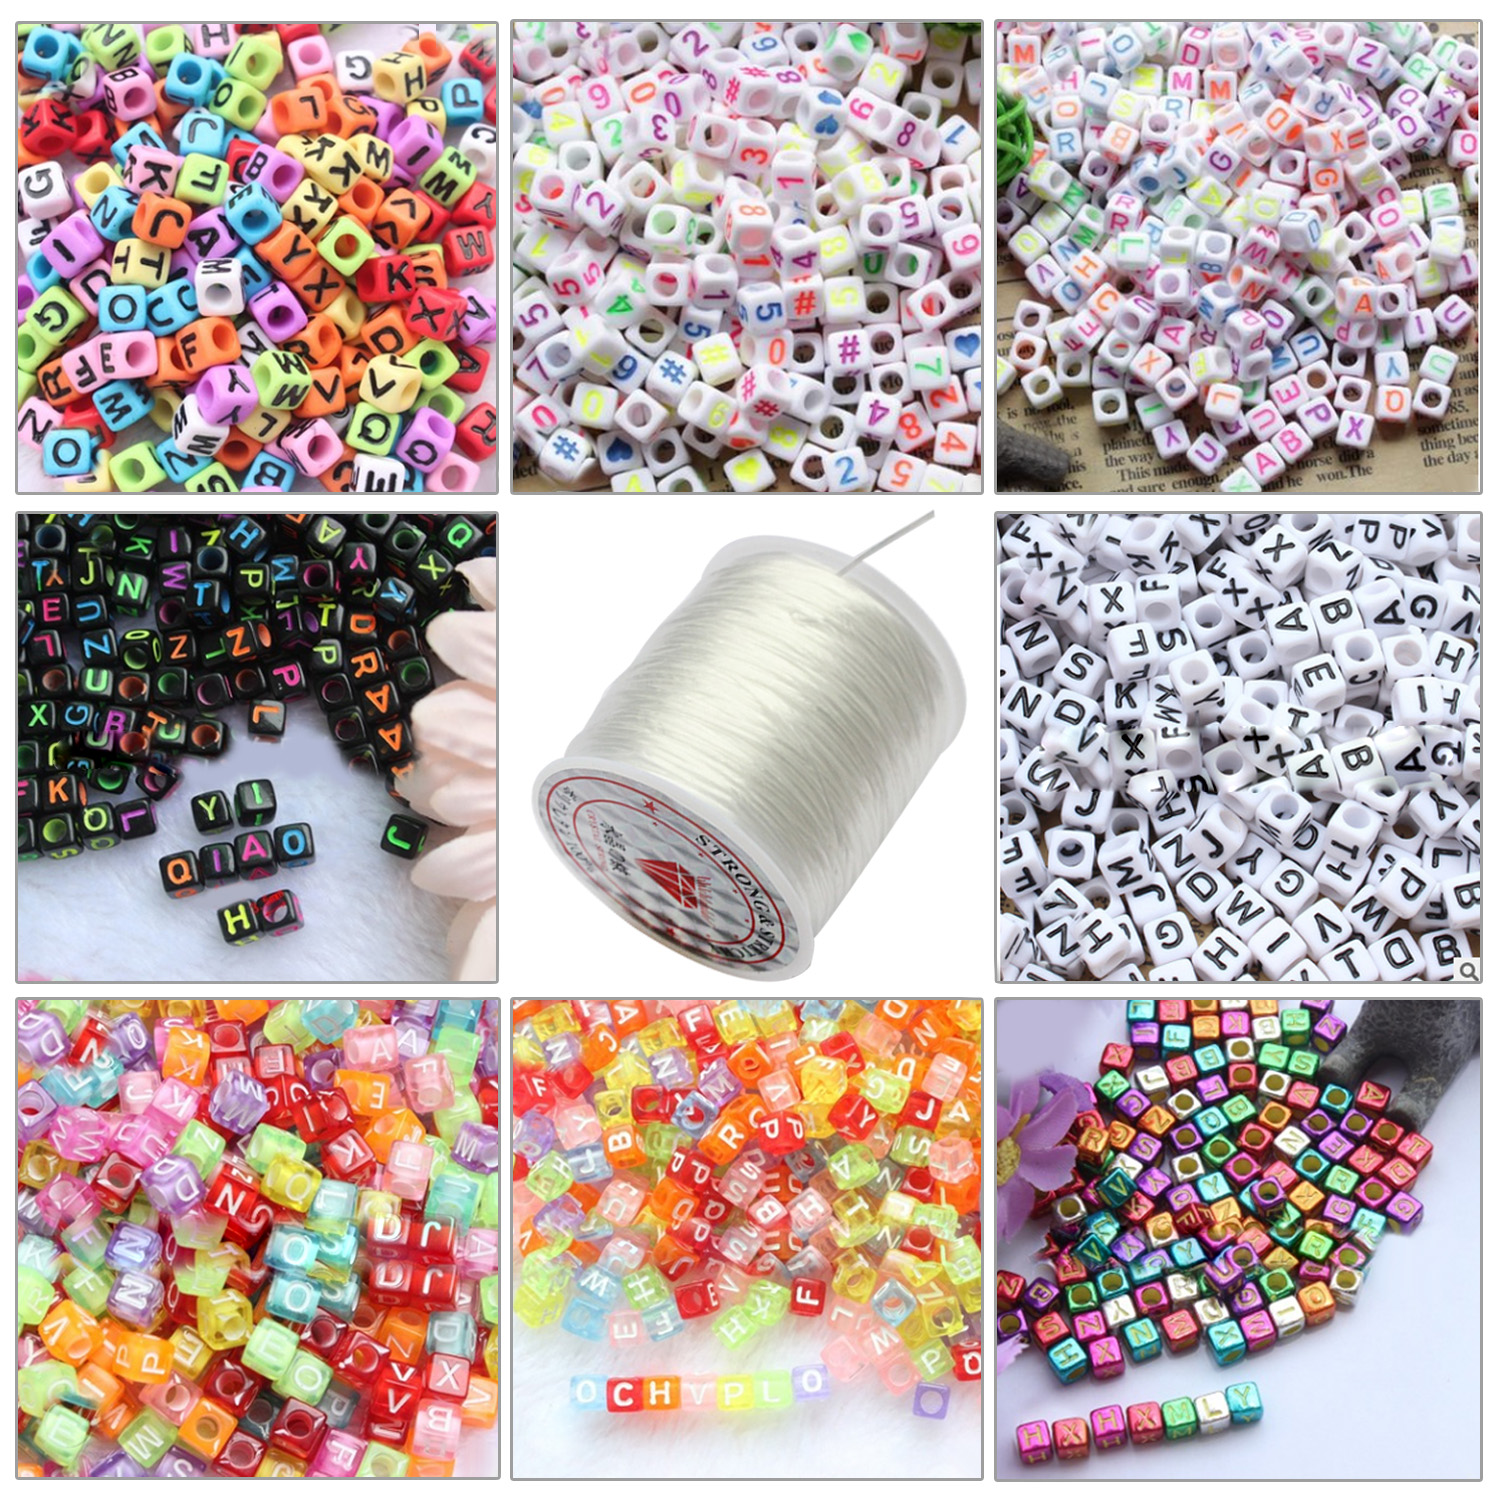 800pcs 8 Style Acrylic Letter Number Craft Beads With 1 Roll Elastic String For Jewelry Making DIY Bracelets Necklaces